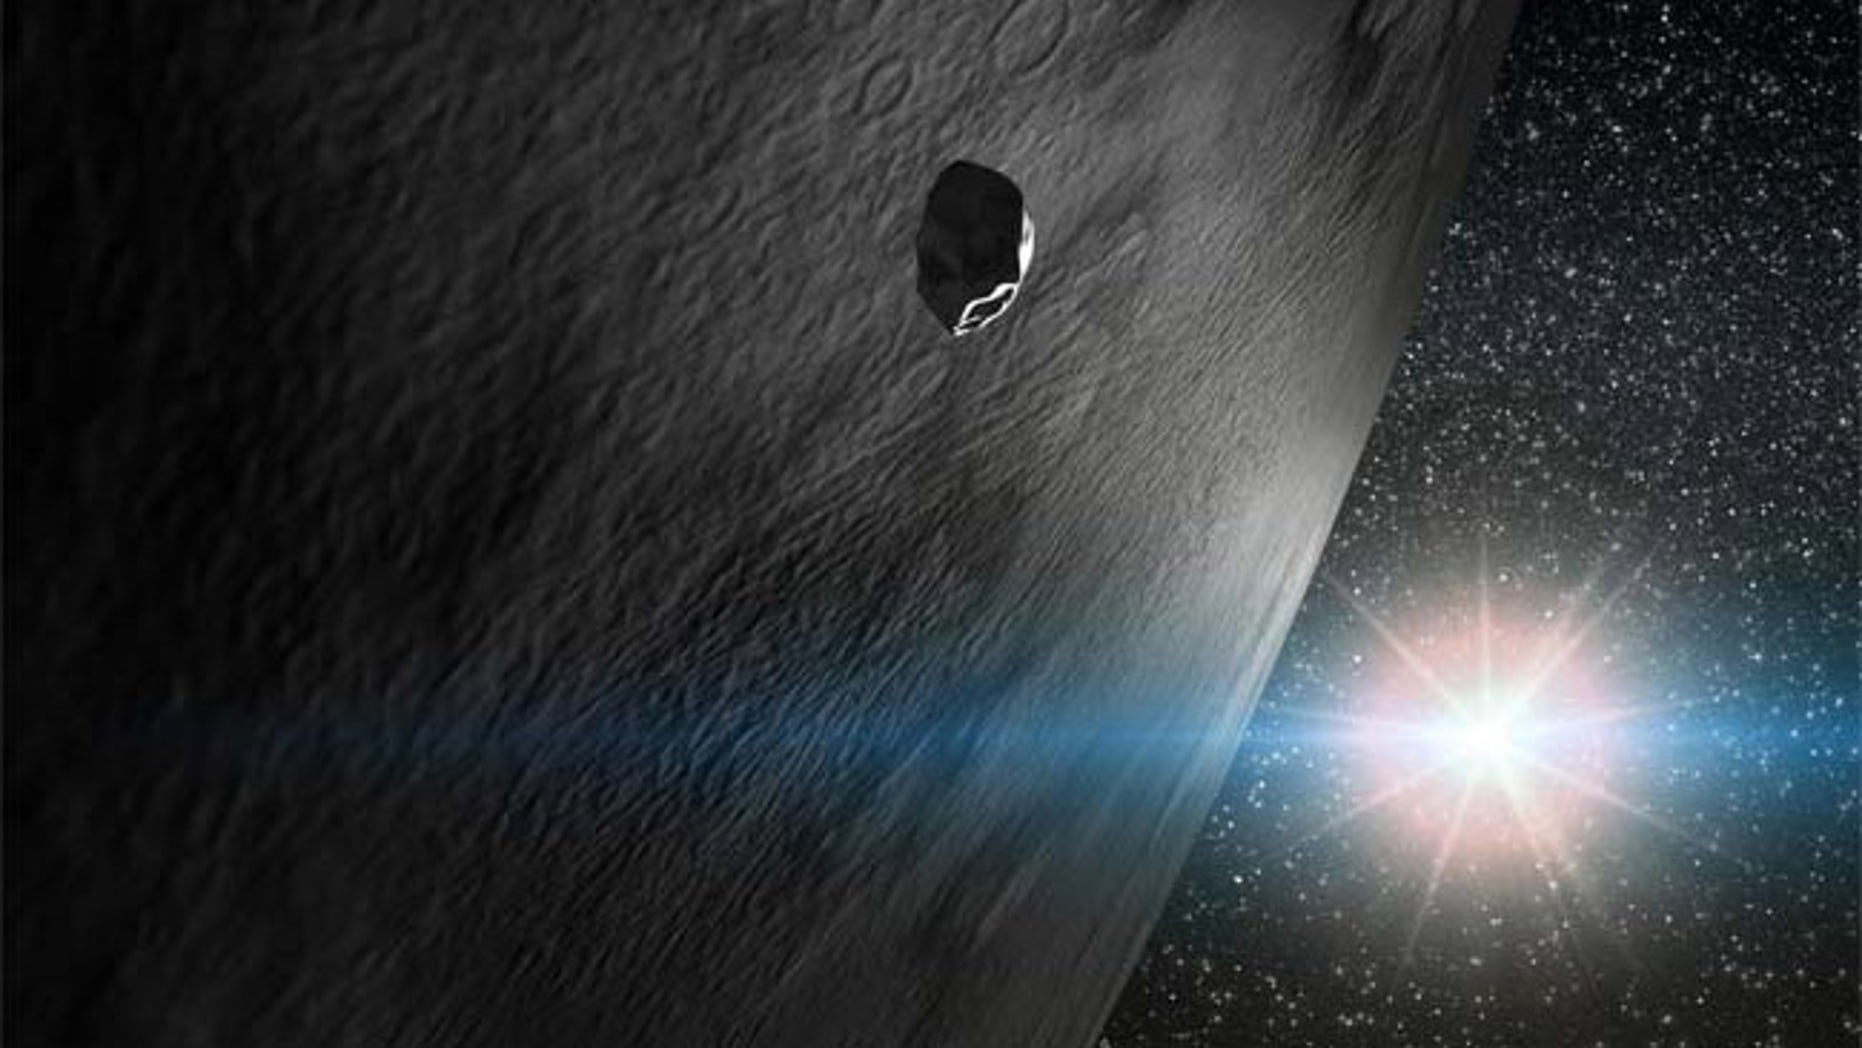 An illustration of the asteroid 24 Themis along with two small fragments that orbit with it. One of the small fragments is inert (as most asteroids are) and the other has a comet-like tail.